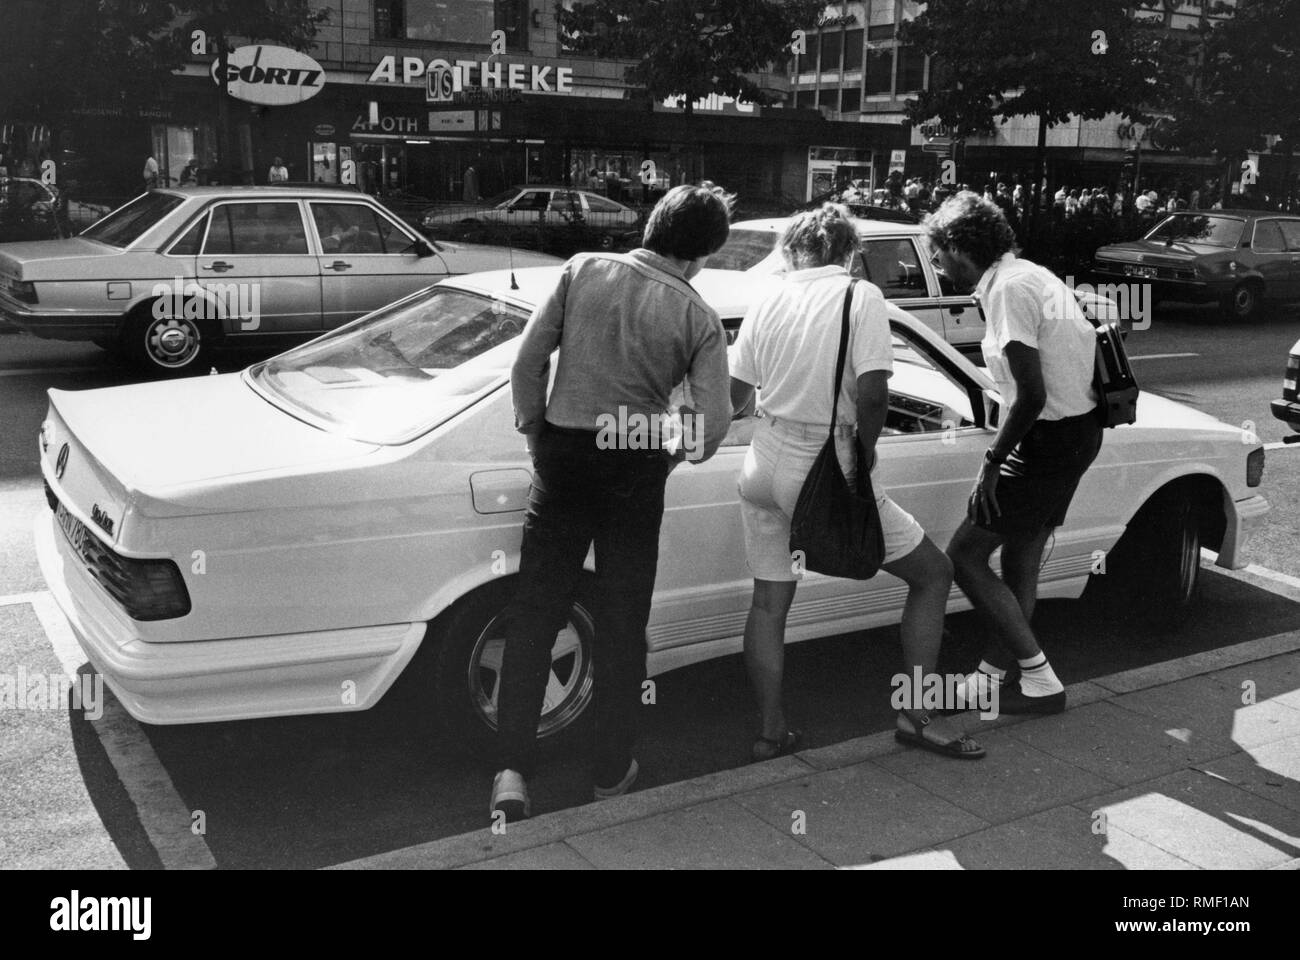 Three passers-by look at a Mercedes 500 SEC (C126 series) with AMG rims and body kit. - Stock Image